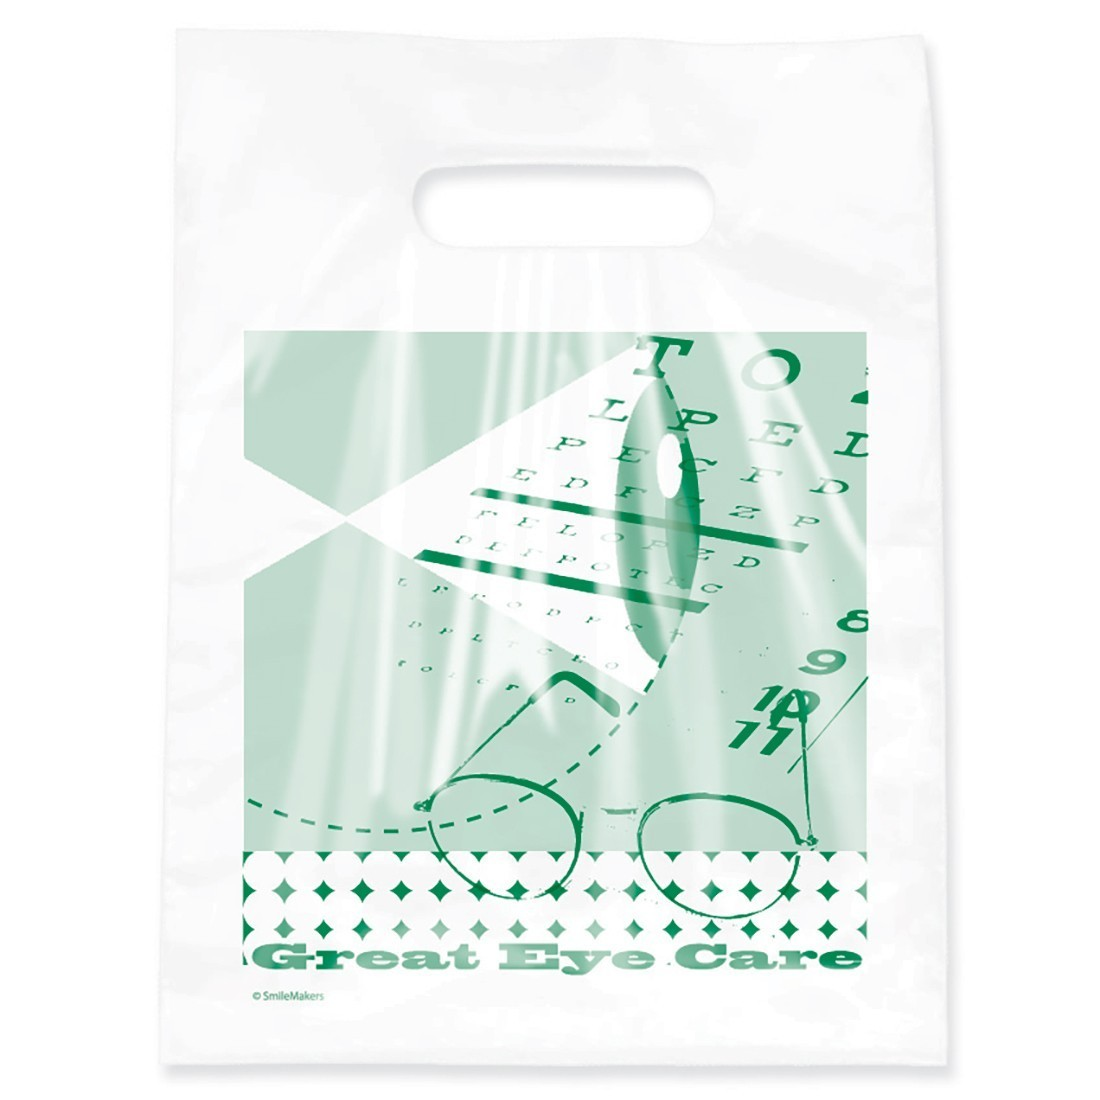 Great Eye Care Clear Bags                          [image]